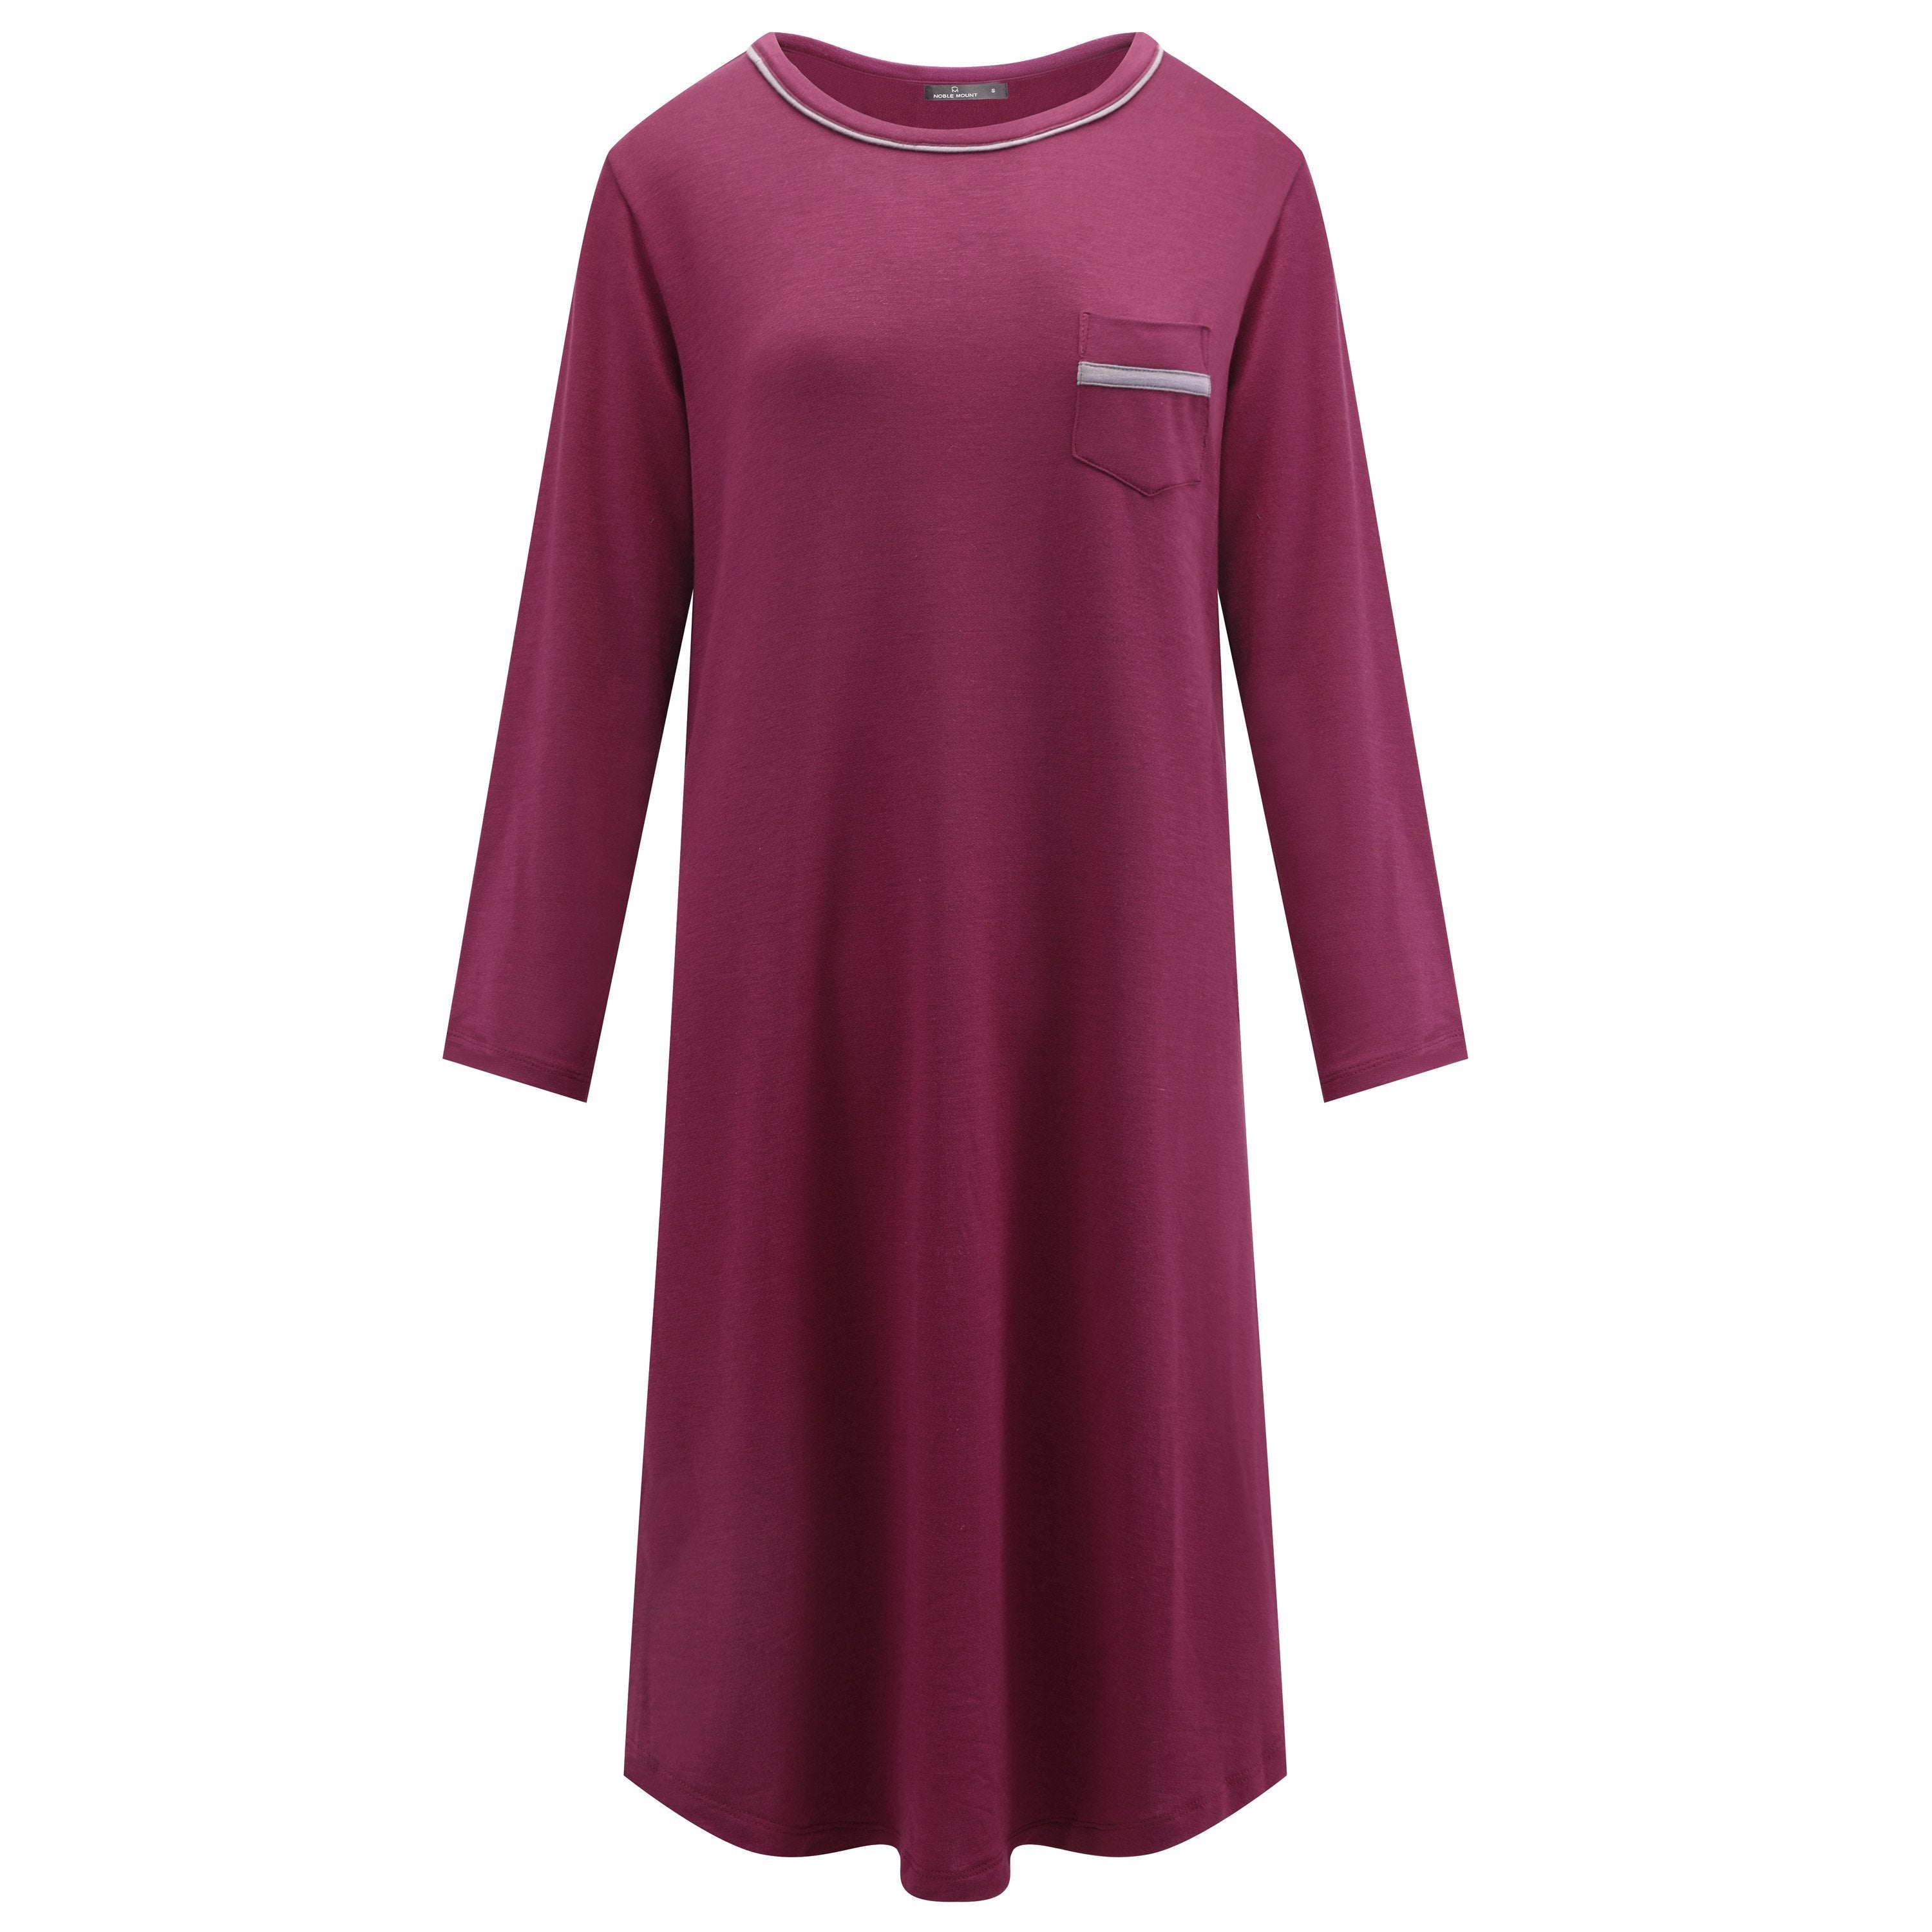 Women's Jersey Knit French Terry Sleep Dress (3/4 Sleeve)